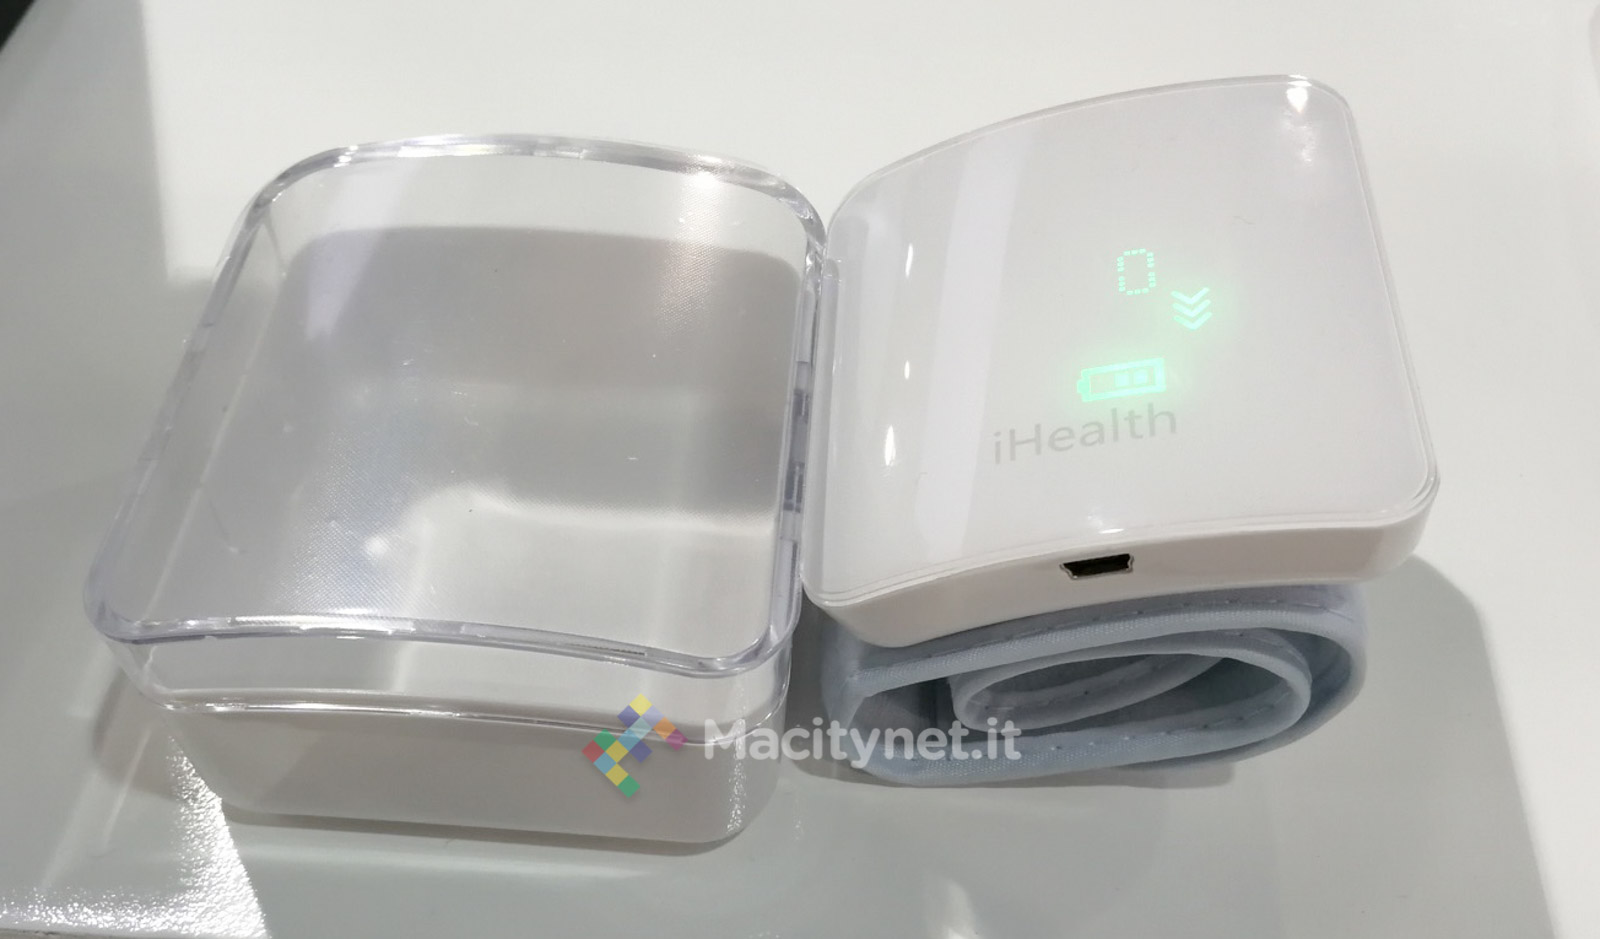 ihealth ces2017